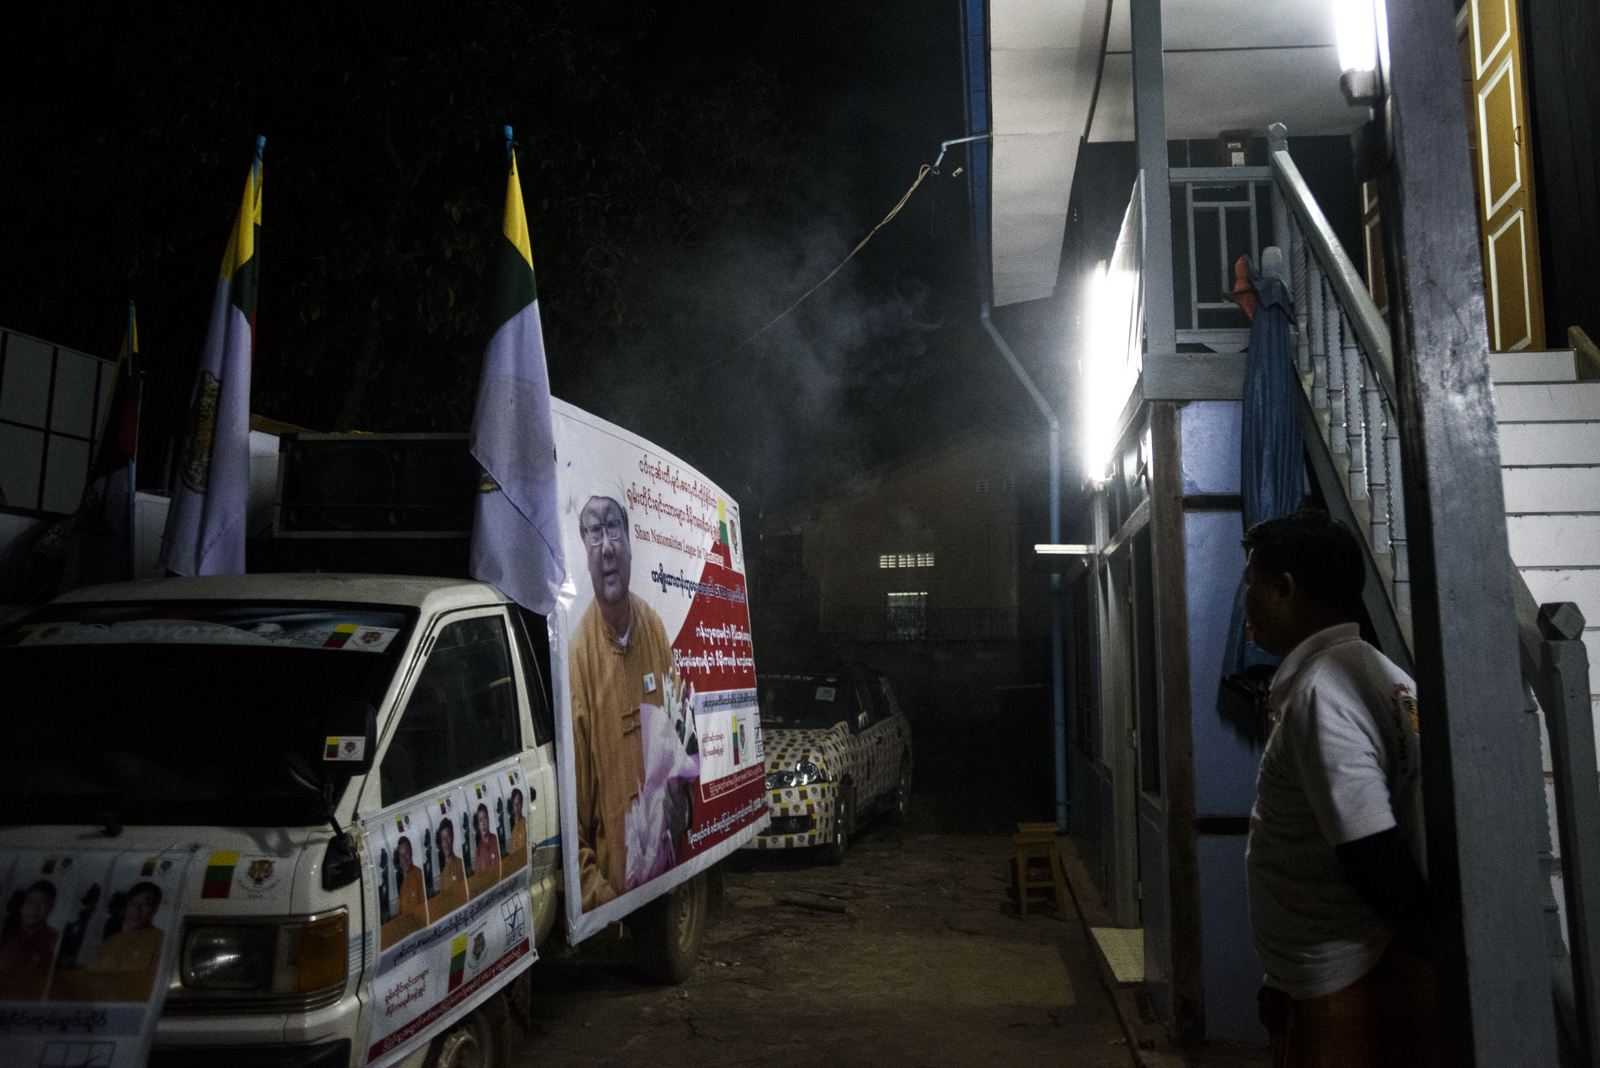 A photo of Khun Htun Oo emblazoned on a poster. The truck led a convey of more than 100 vehicles the following day, rolling through northern Shan State as part of the campaign.